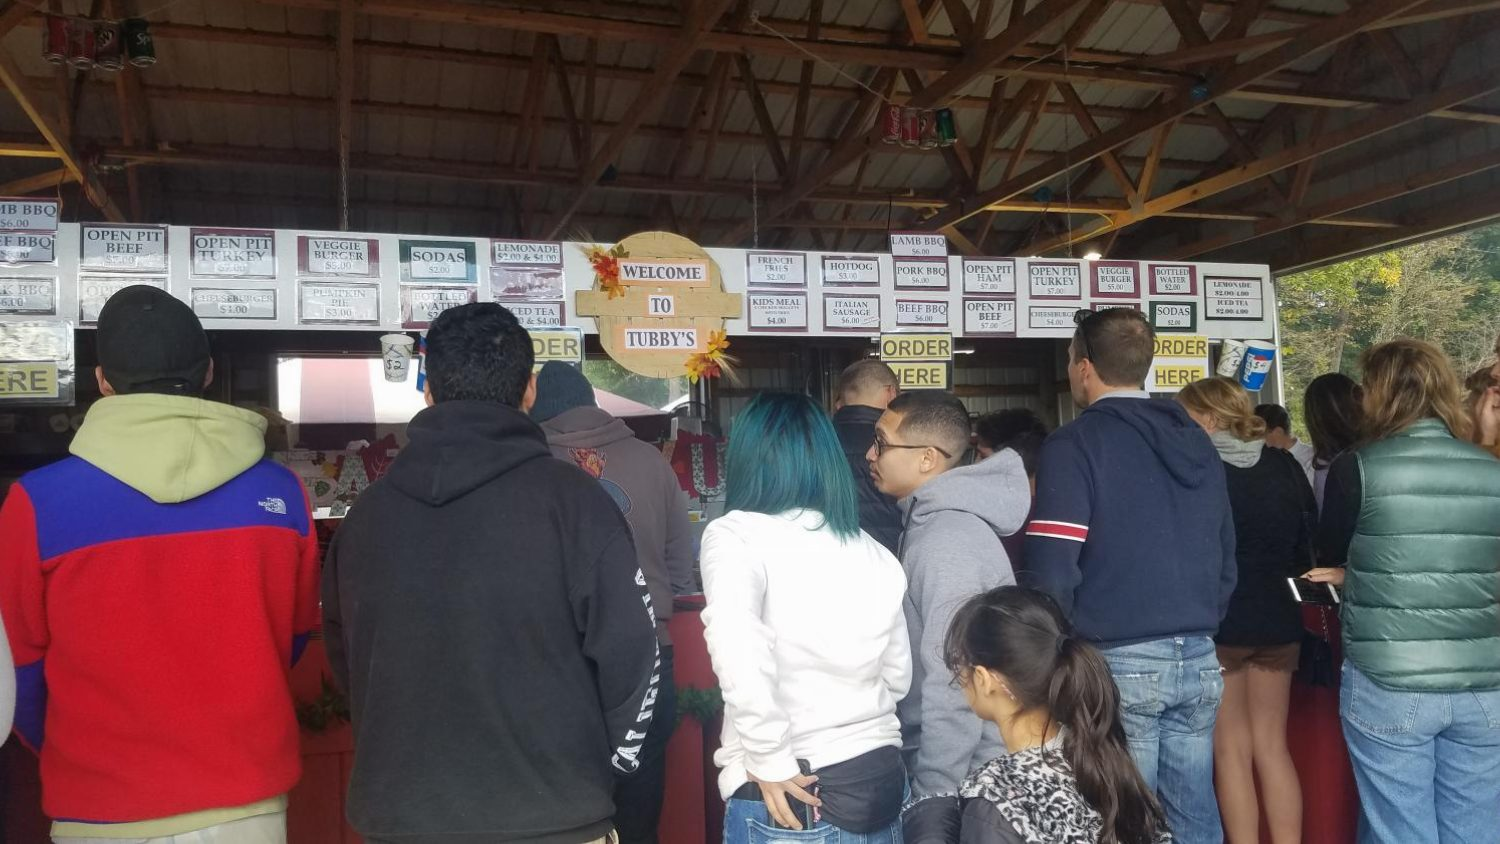 People line up at one of Butler's Orchard's food stands': Tubby's.